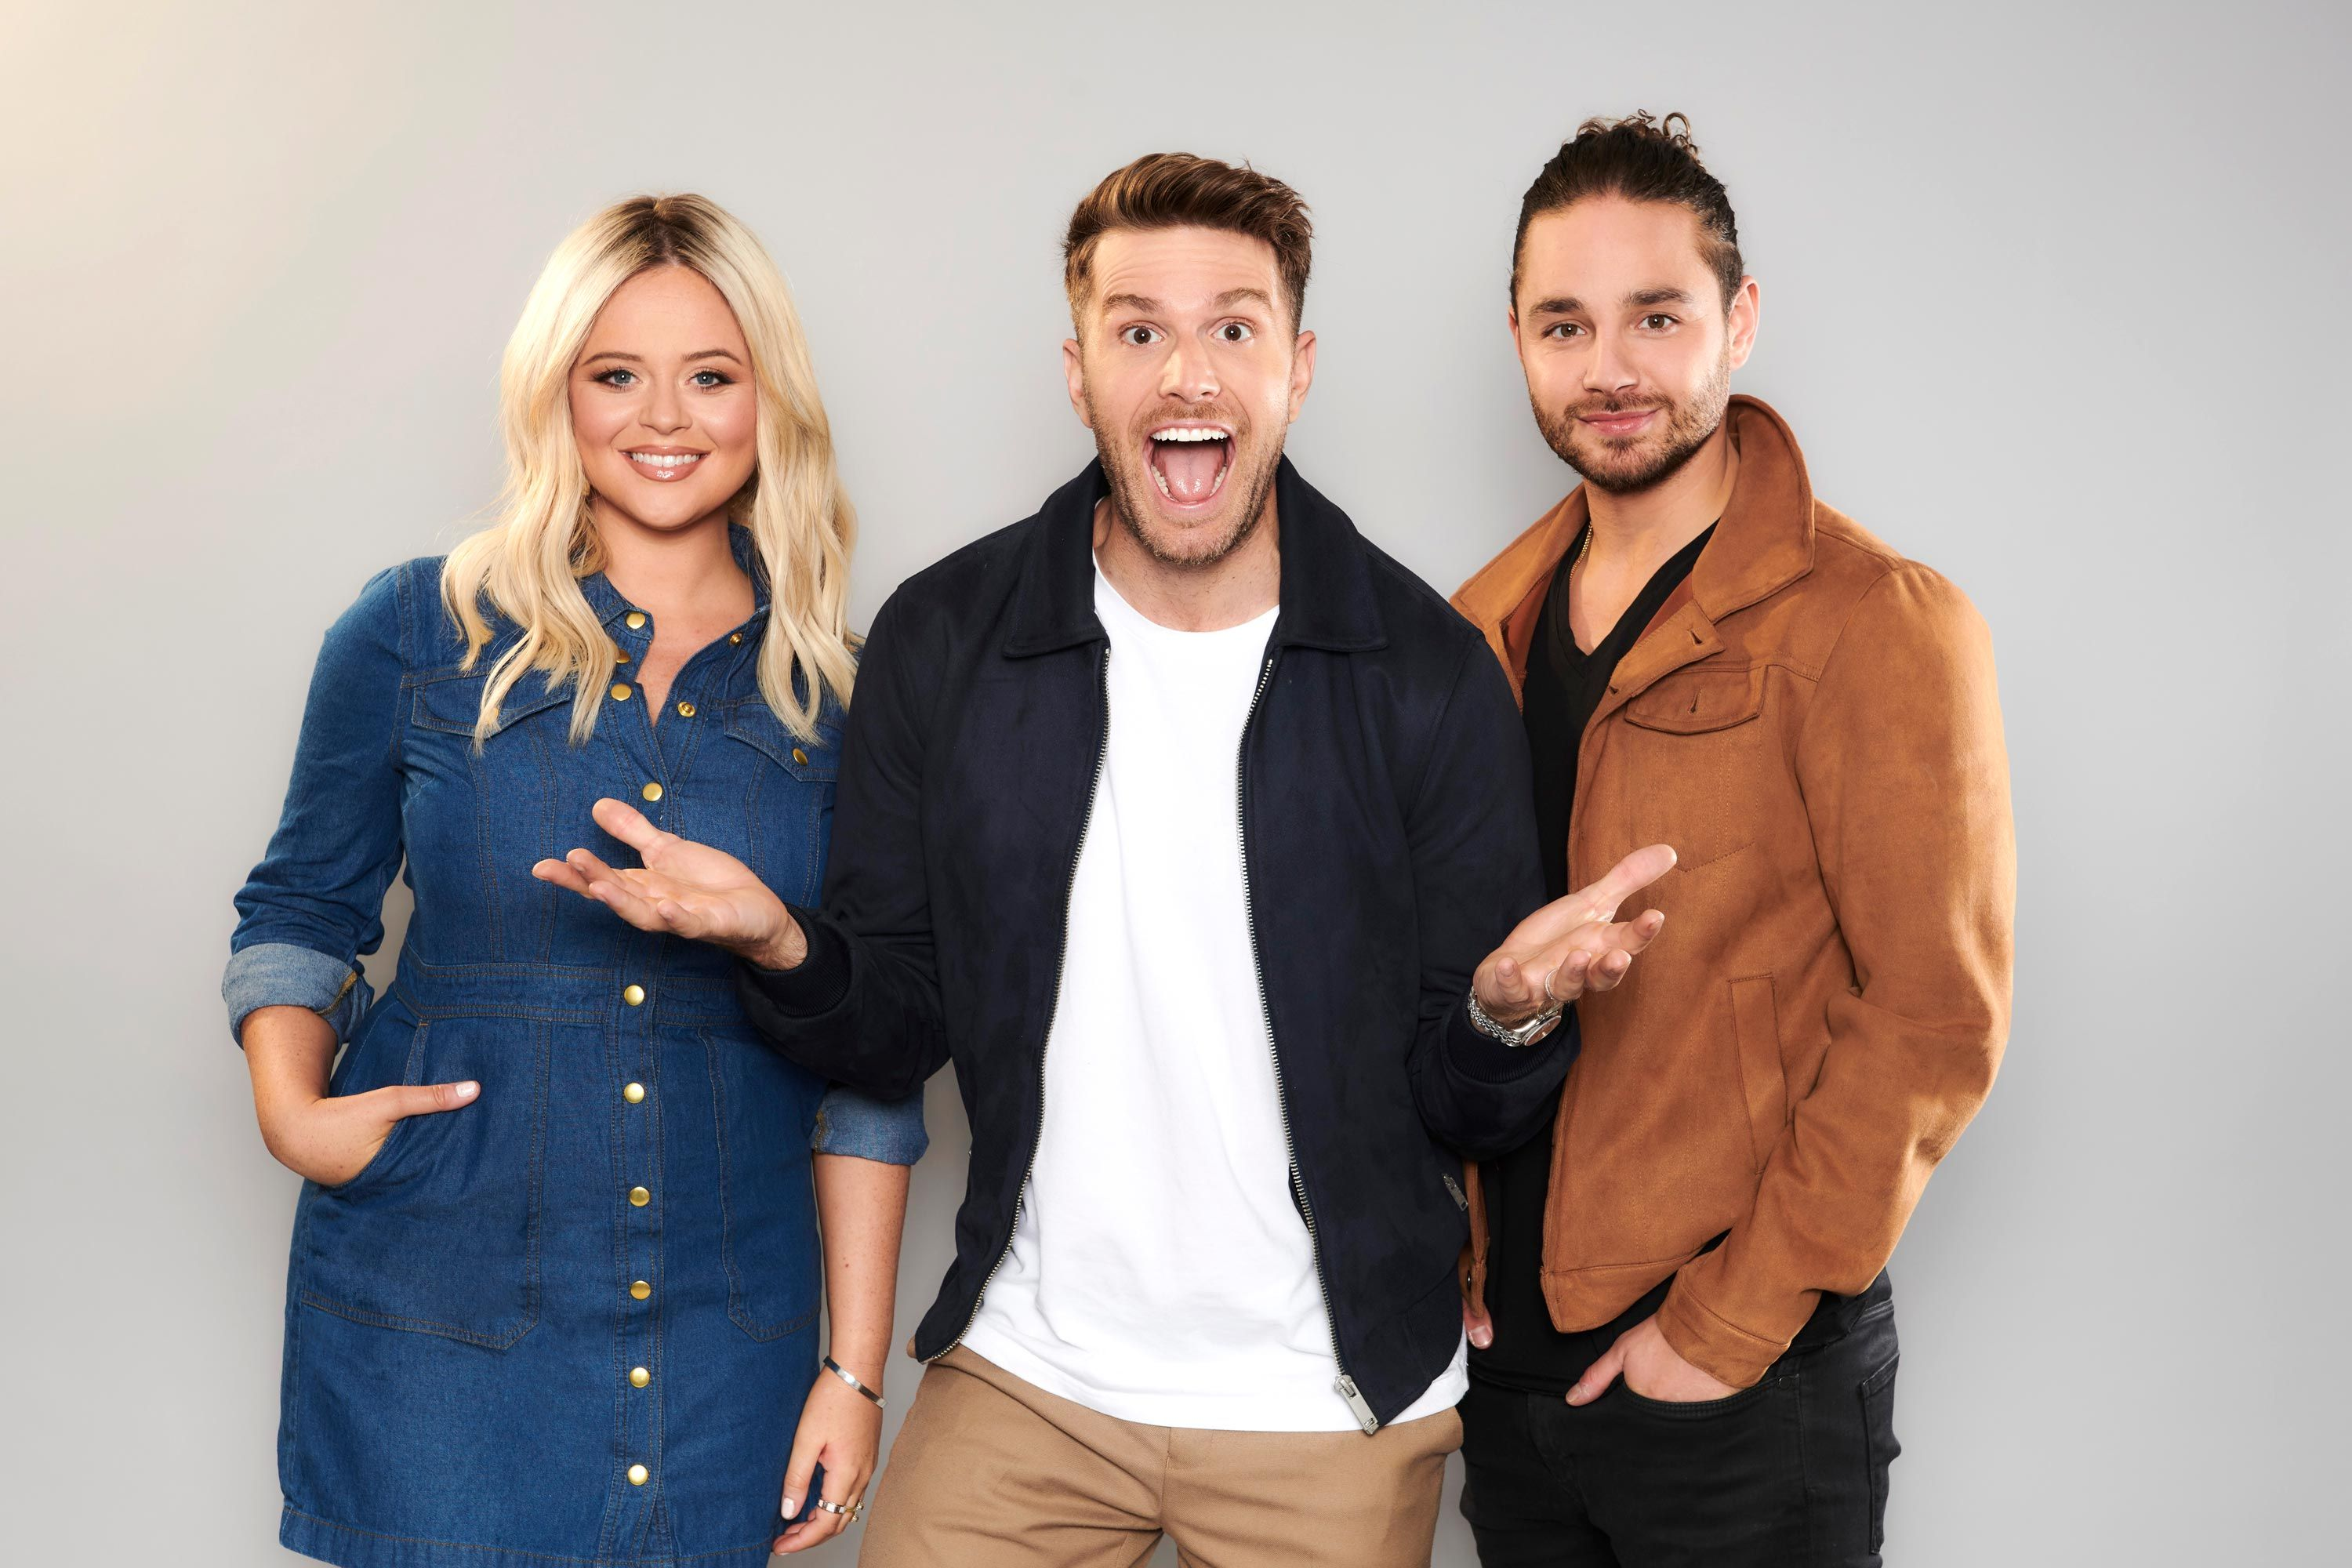 I'm a Celebrity: Extra Camp co-host Joel Dommett confirms the show has been cancelled